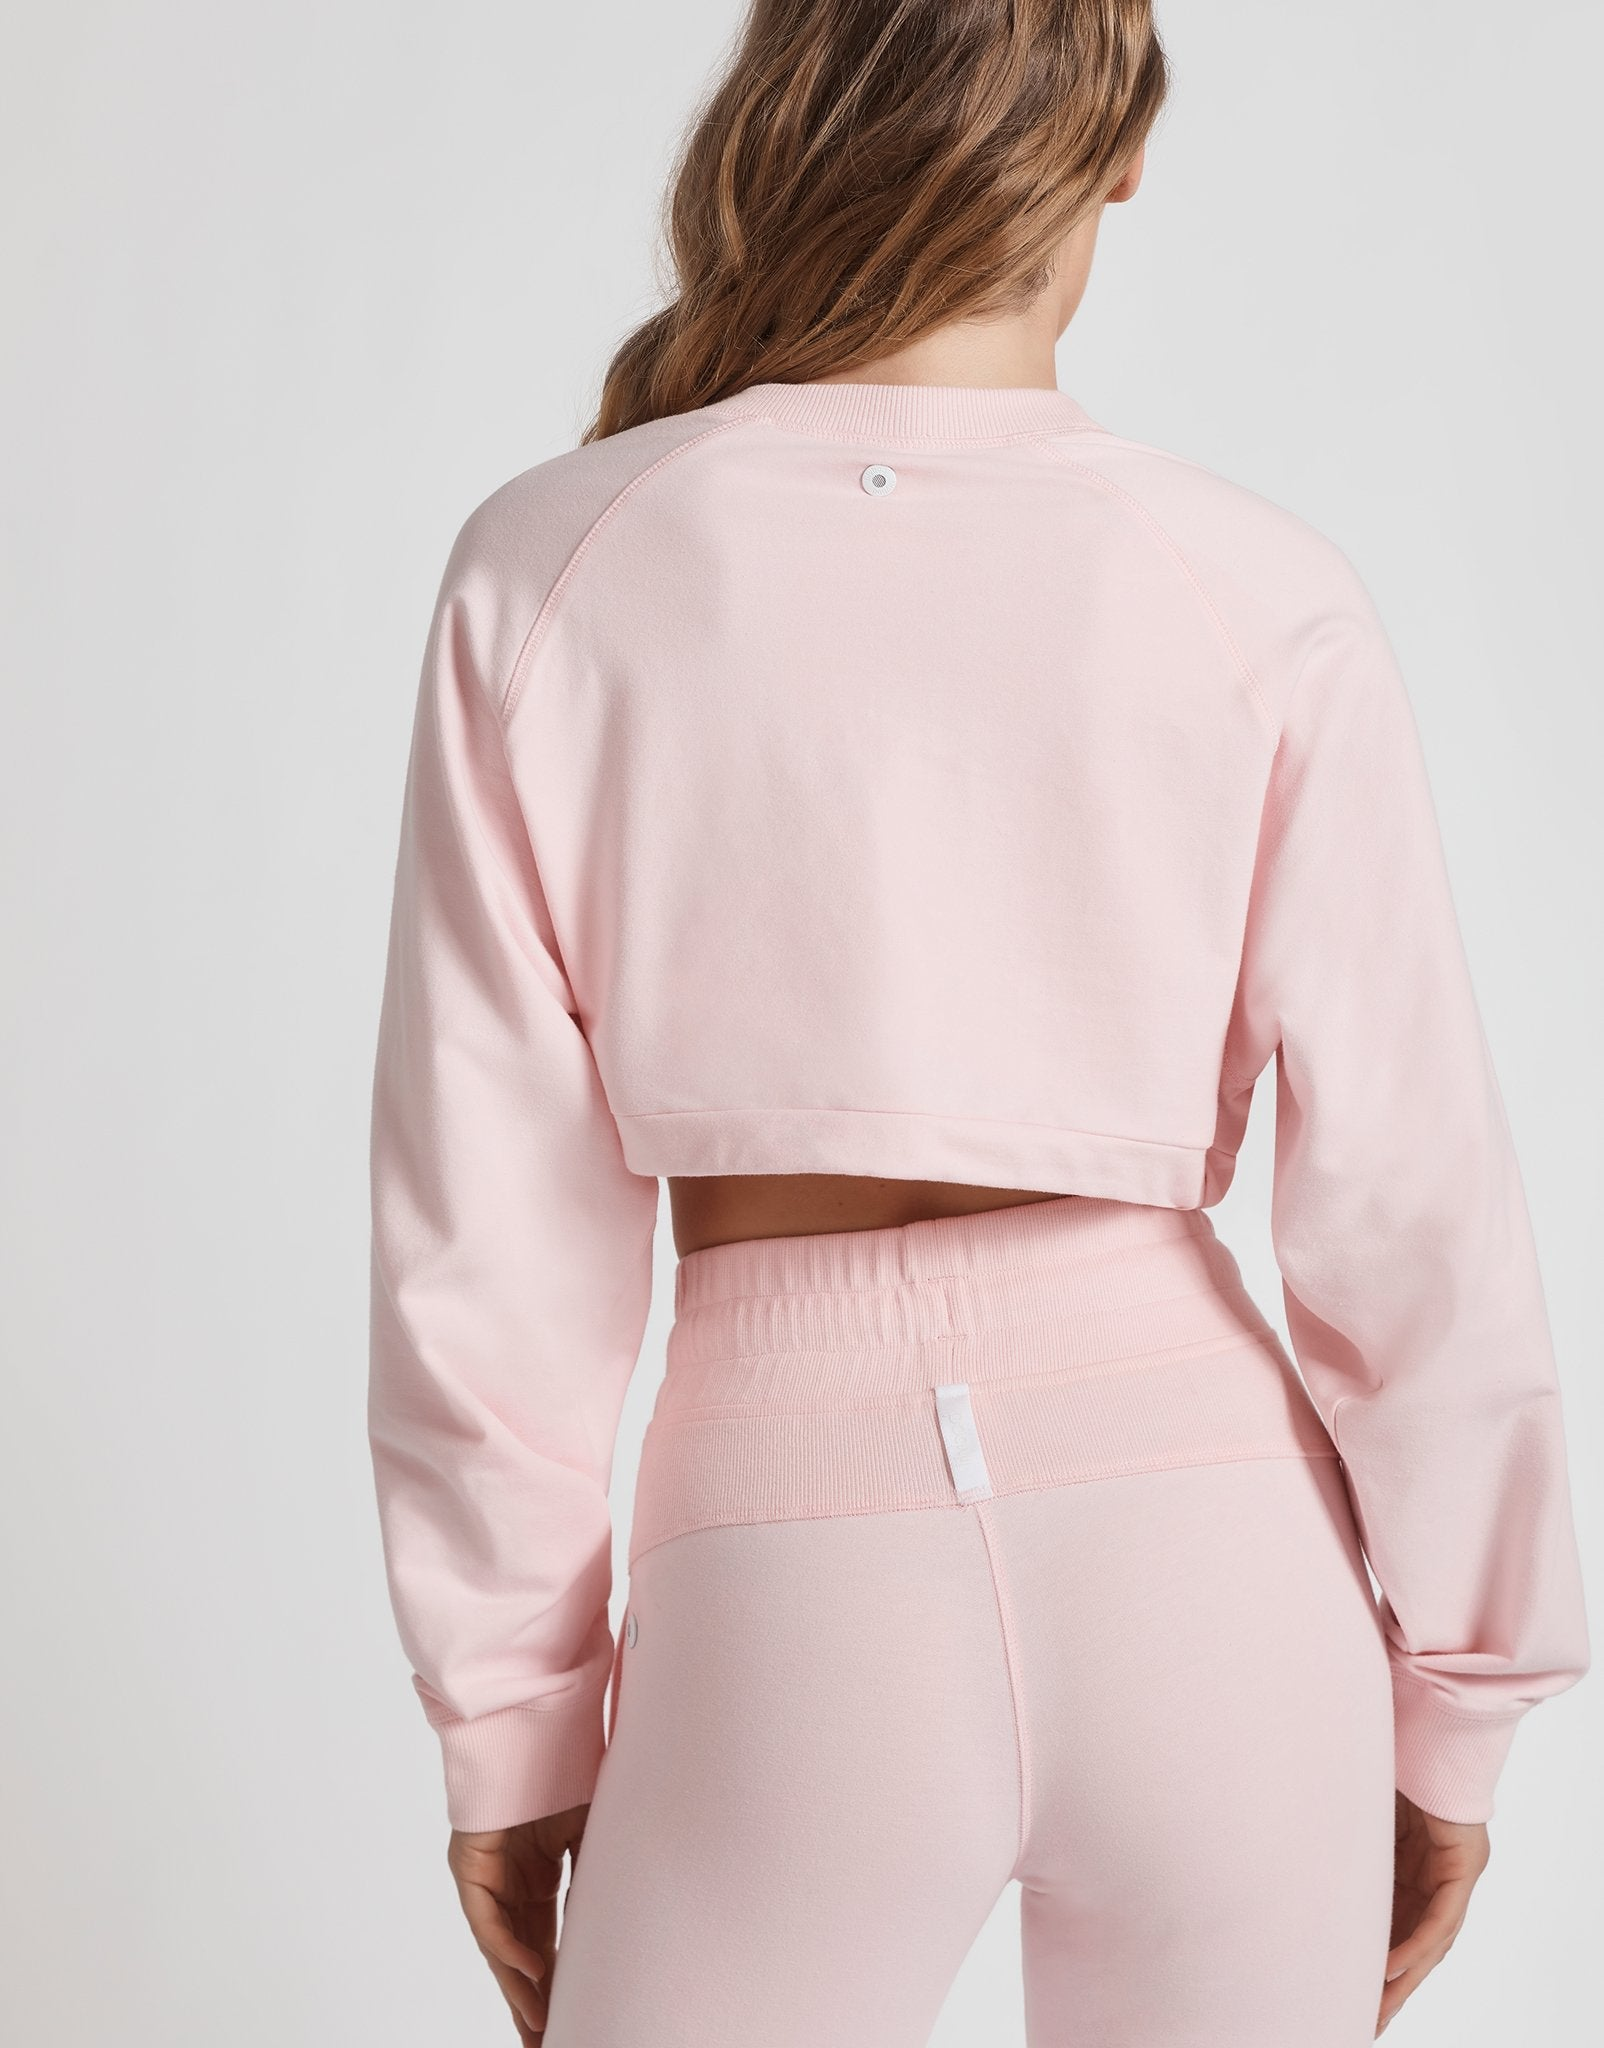 Lilybod-Carla-Pink-Sweat-Toggle-Waist-front-x.jpg